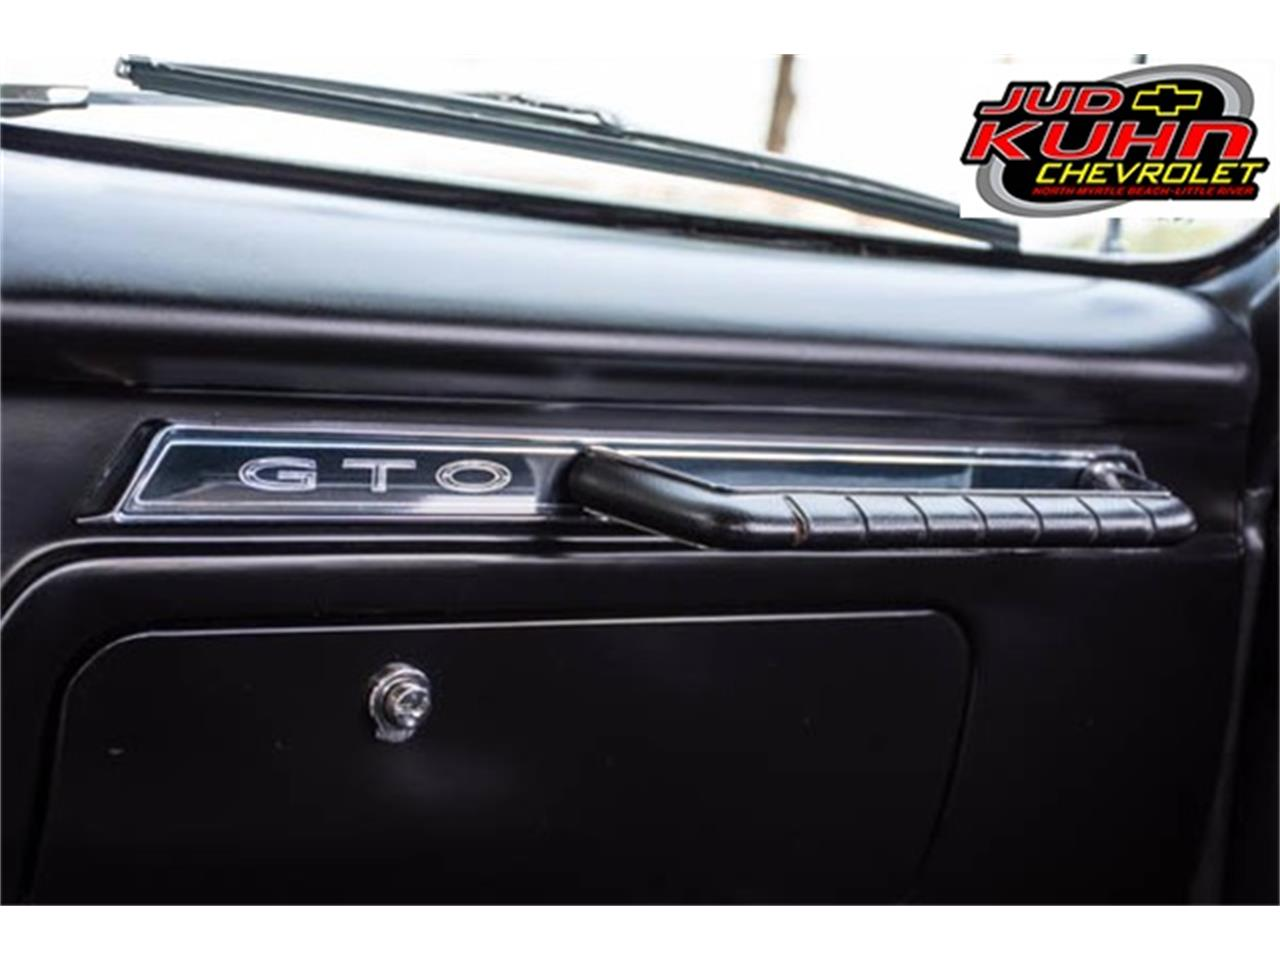 Large Picture of Classic 1965 GTO located in South Carolina Offered by Jud Kuhn Chevrolet - J909